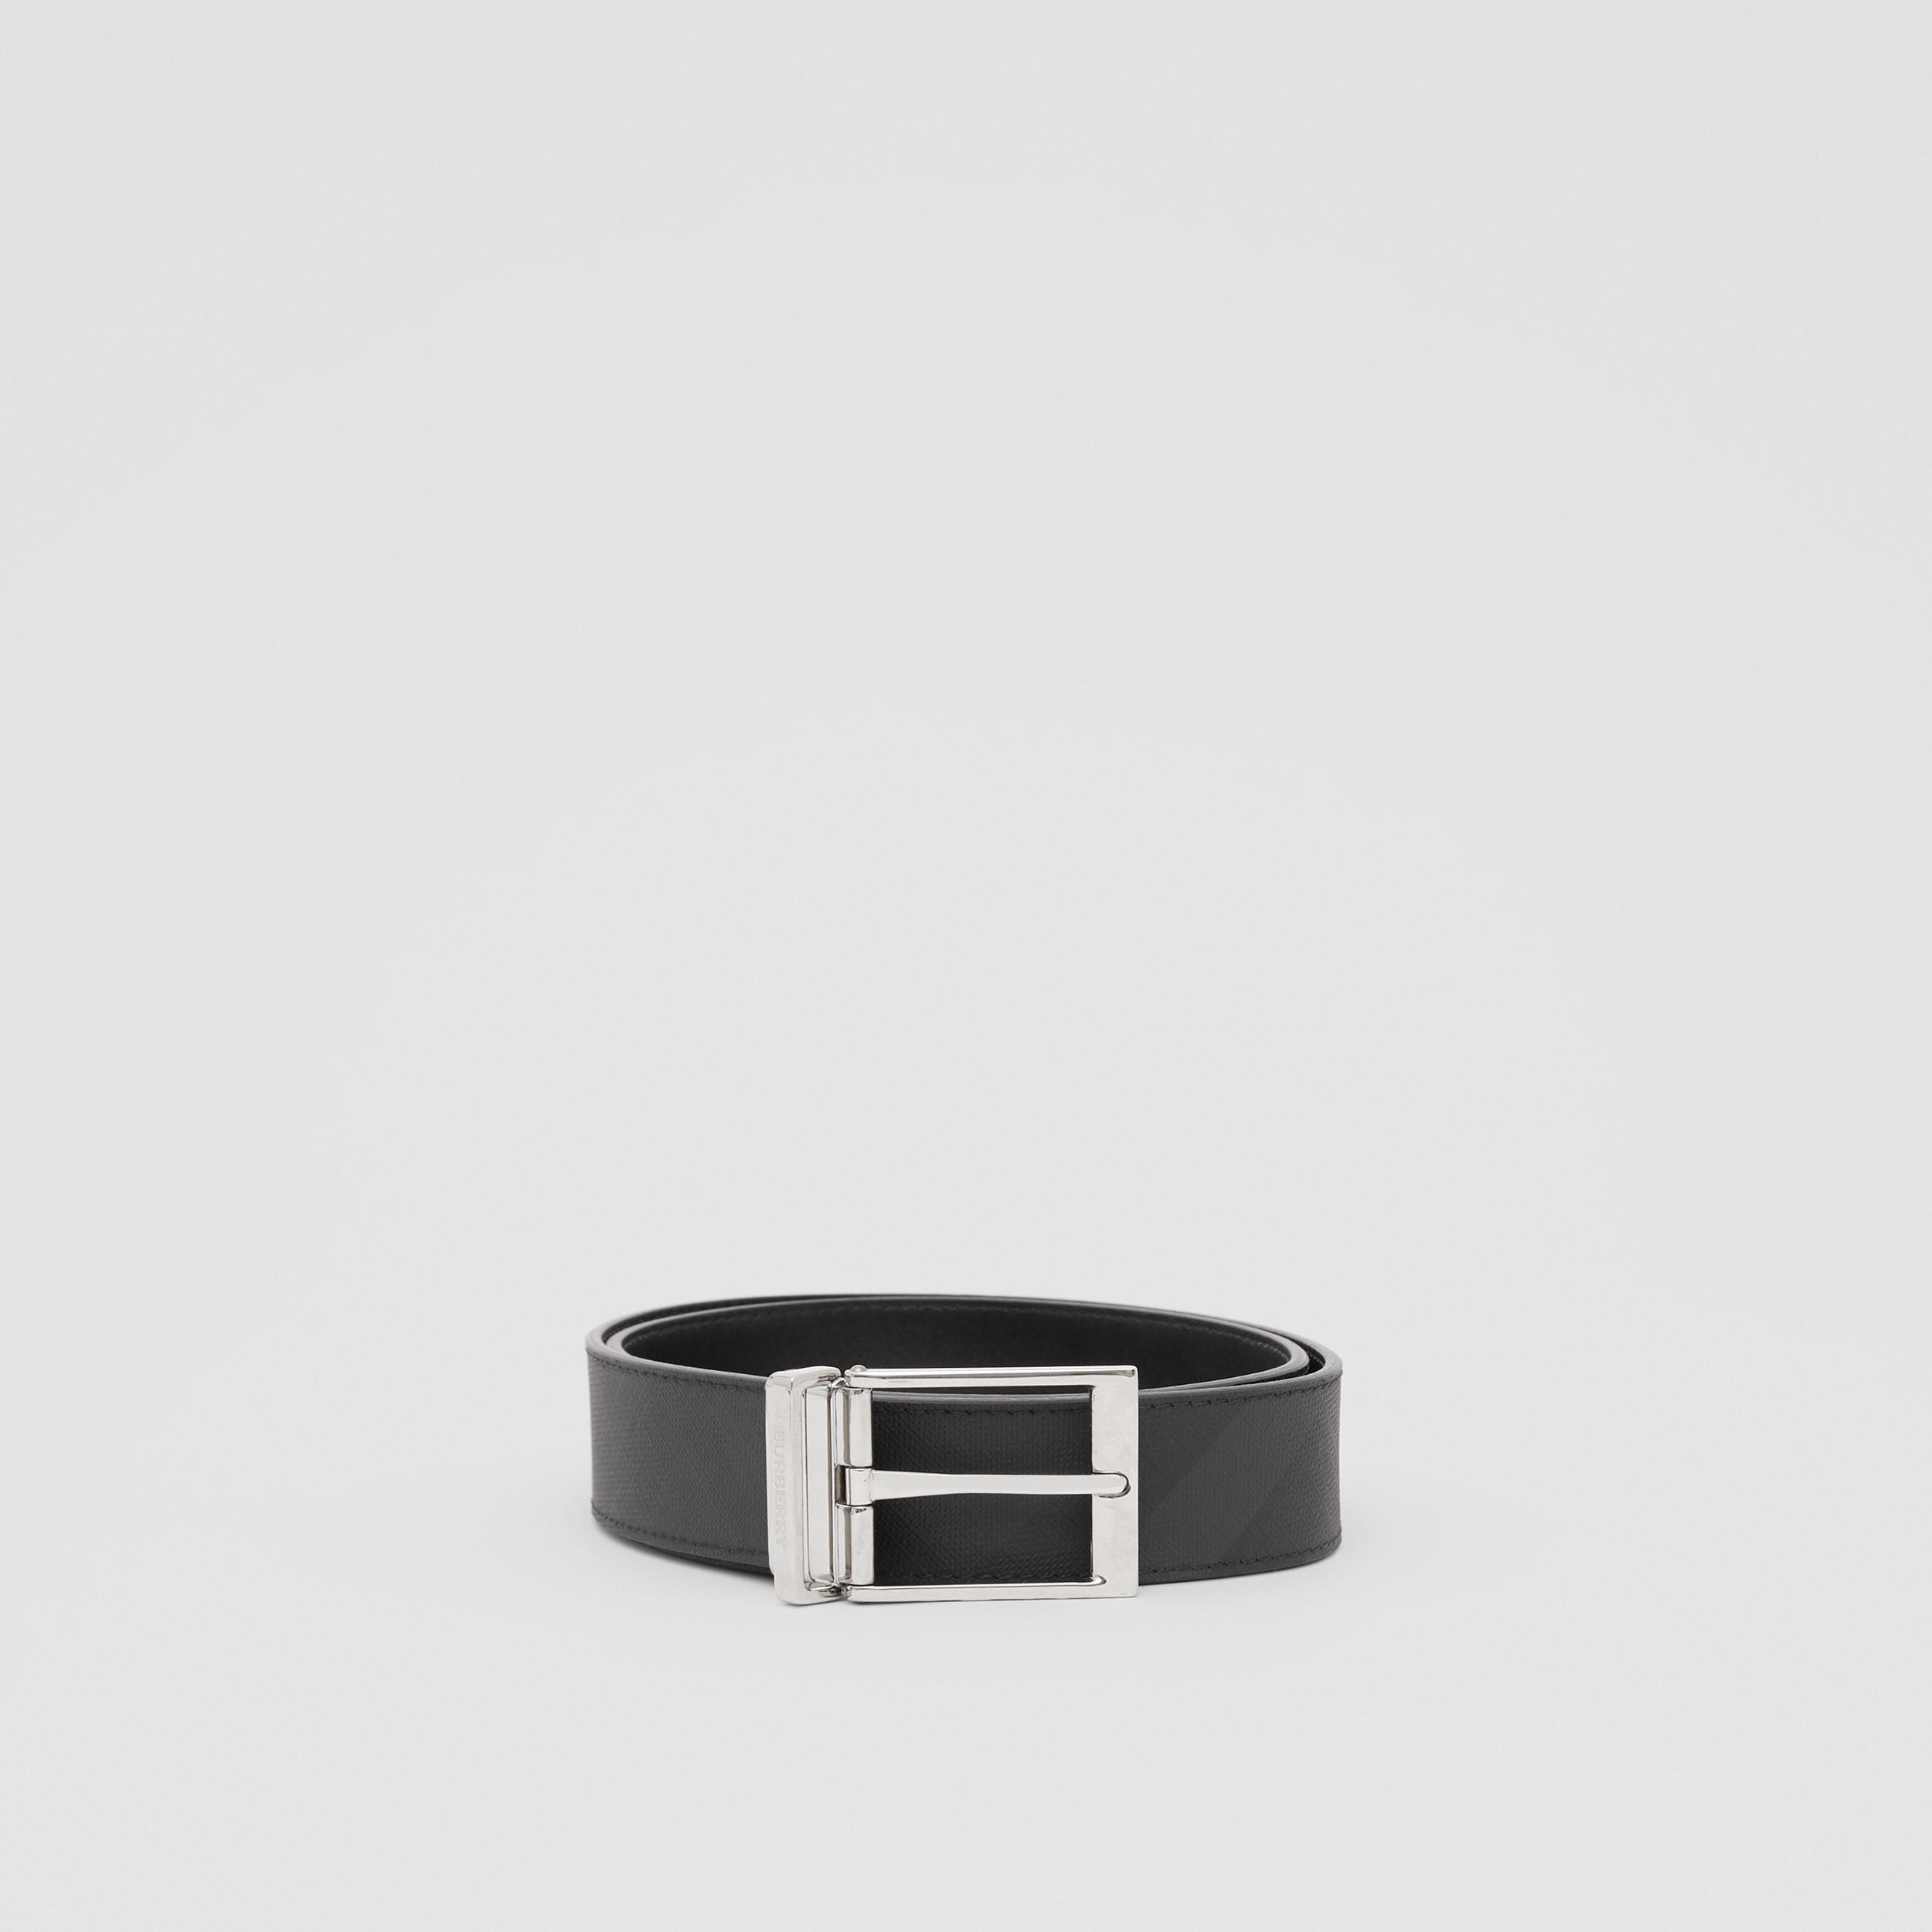 Reversible London Check and Leather Belt in Dark Charcoal/black - Men | Burberry - 4